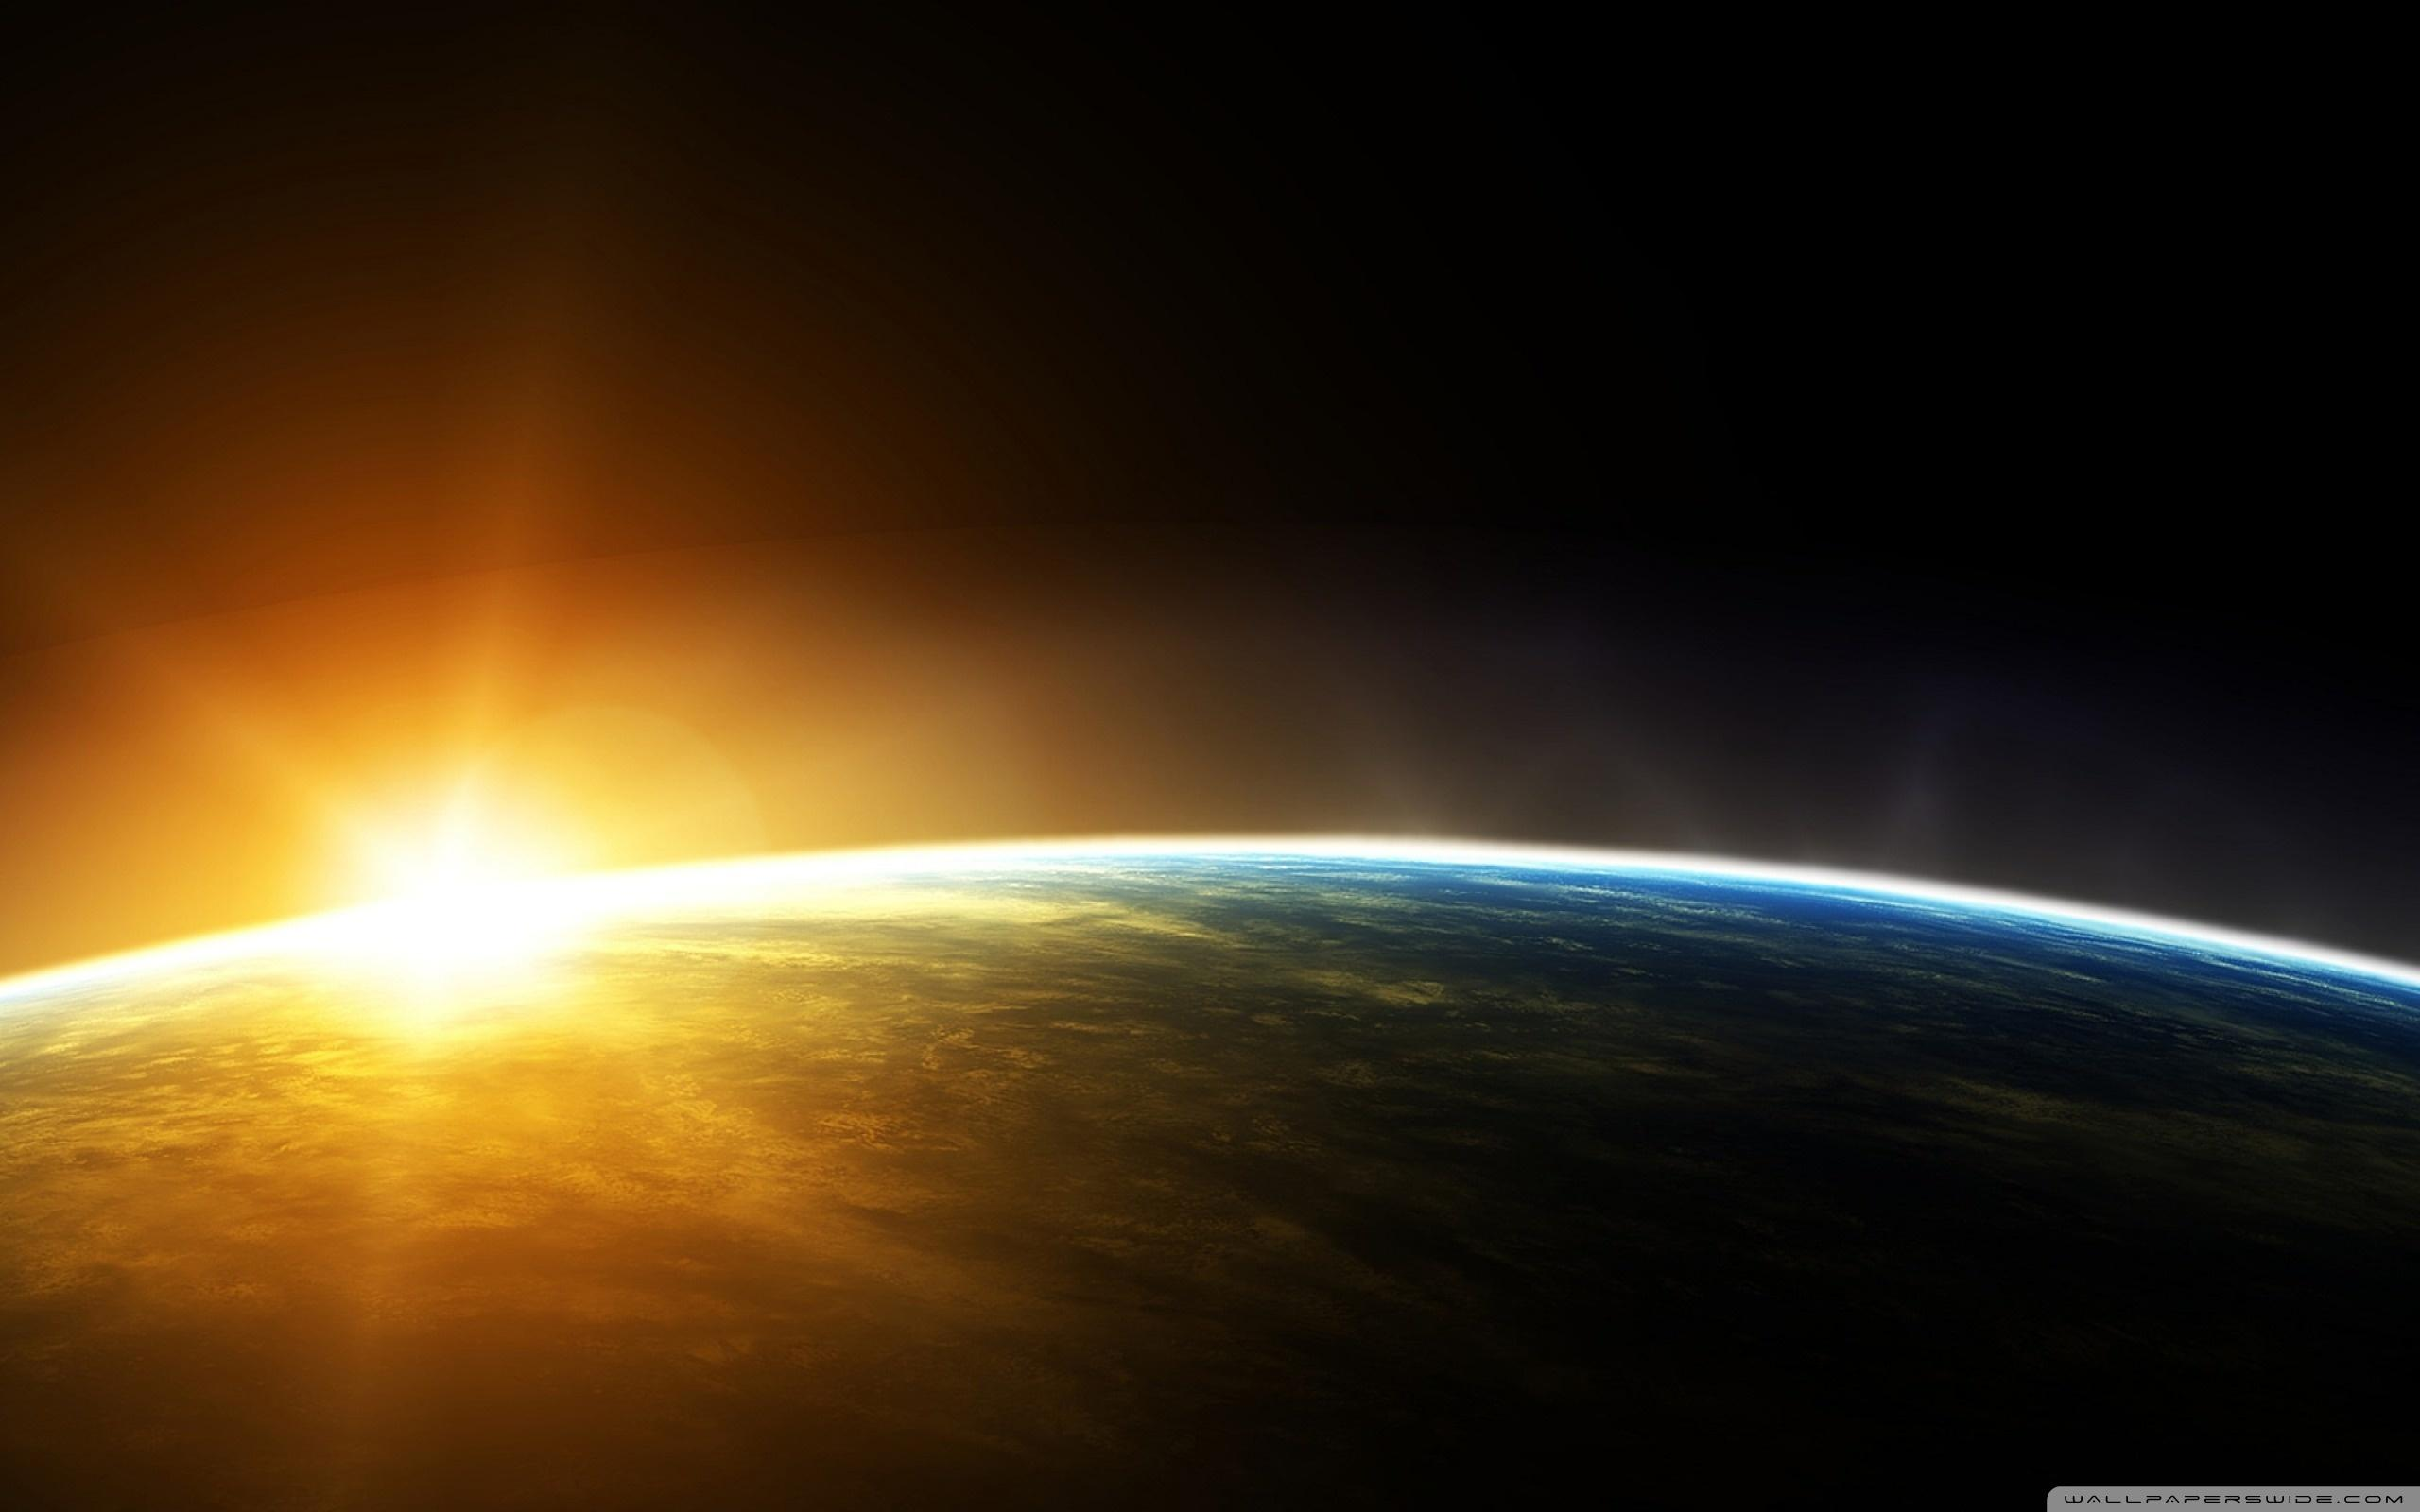 earth_sunrise_space_2-wallpaper-2560x1600